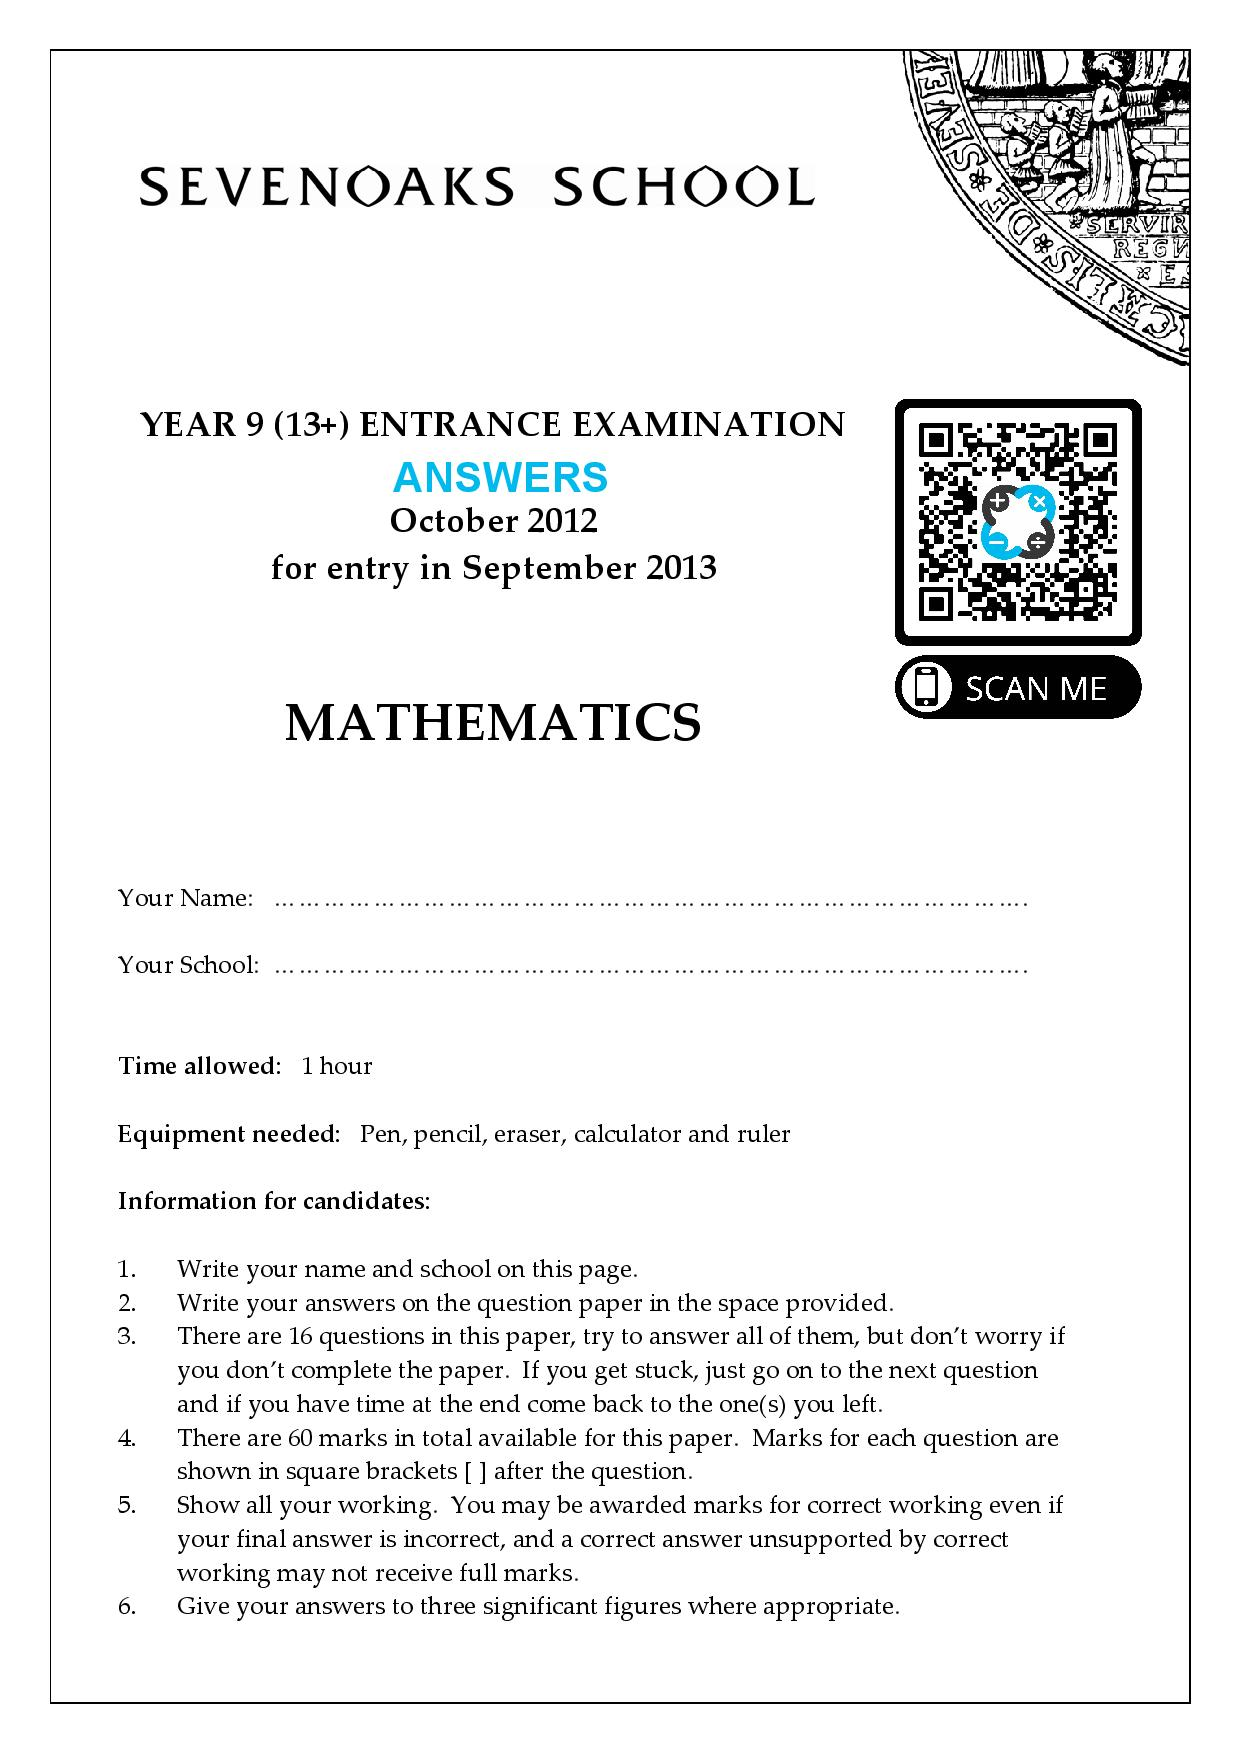 YEAR 9 13 ENTRANCE EXAMINATION 2011 Answer Paper page 001